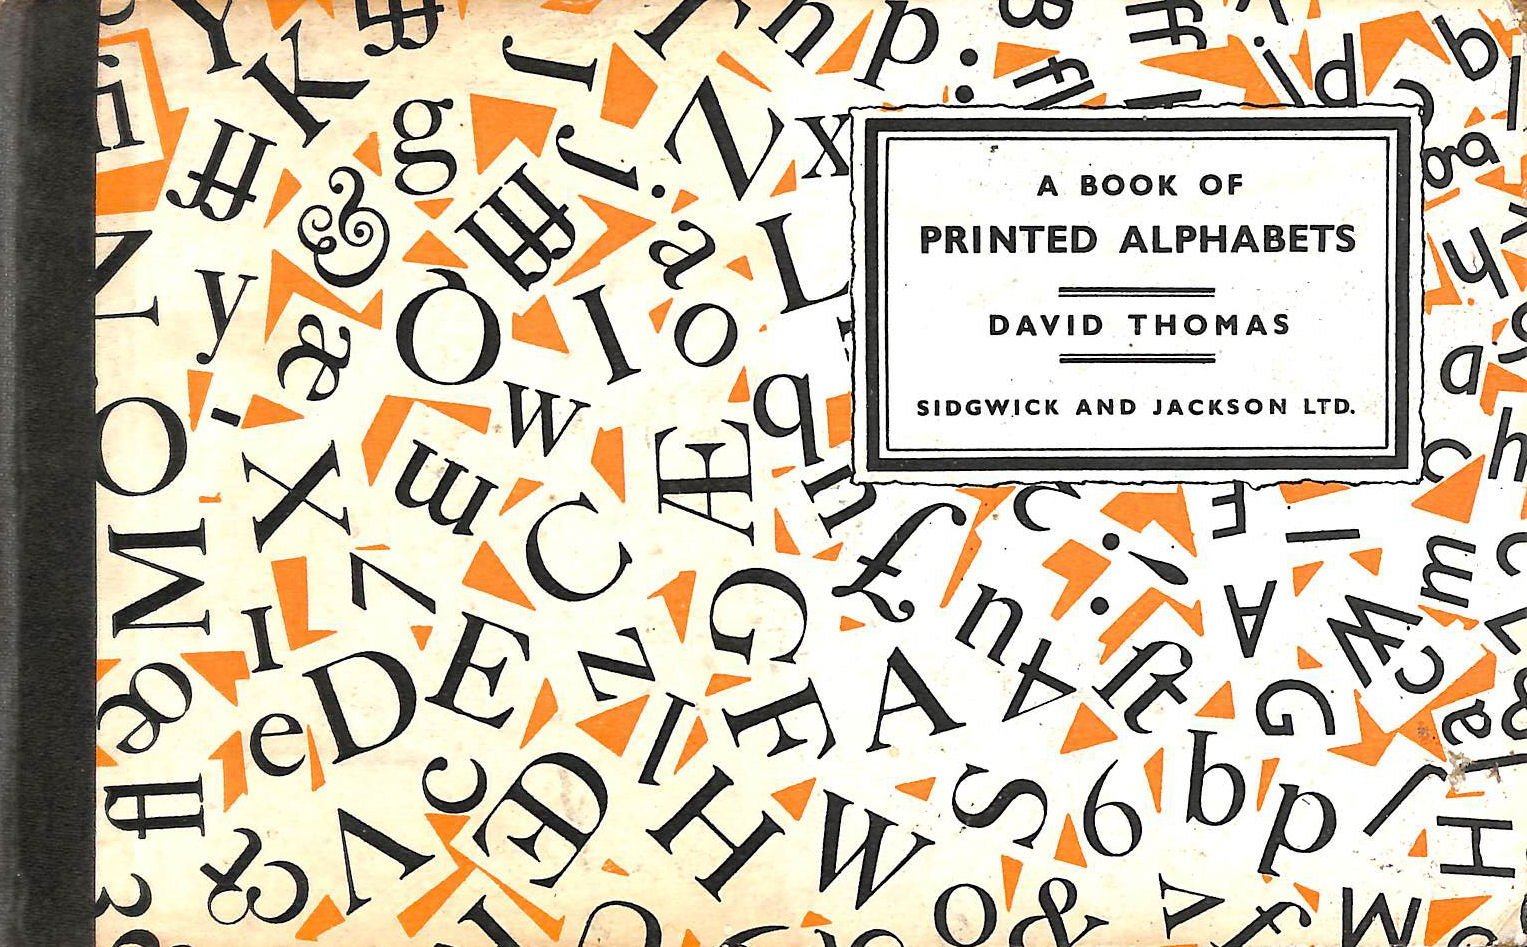 Image for A BOOK OF PRINTED ALPHABETS.